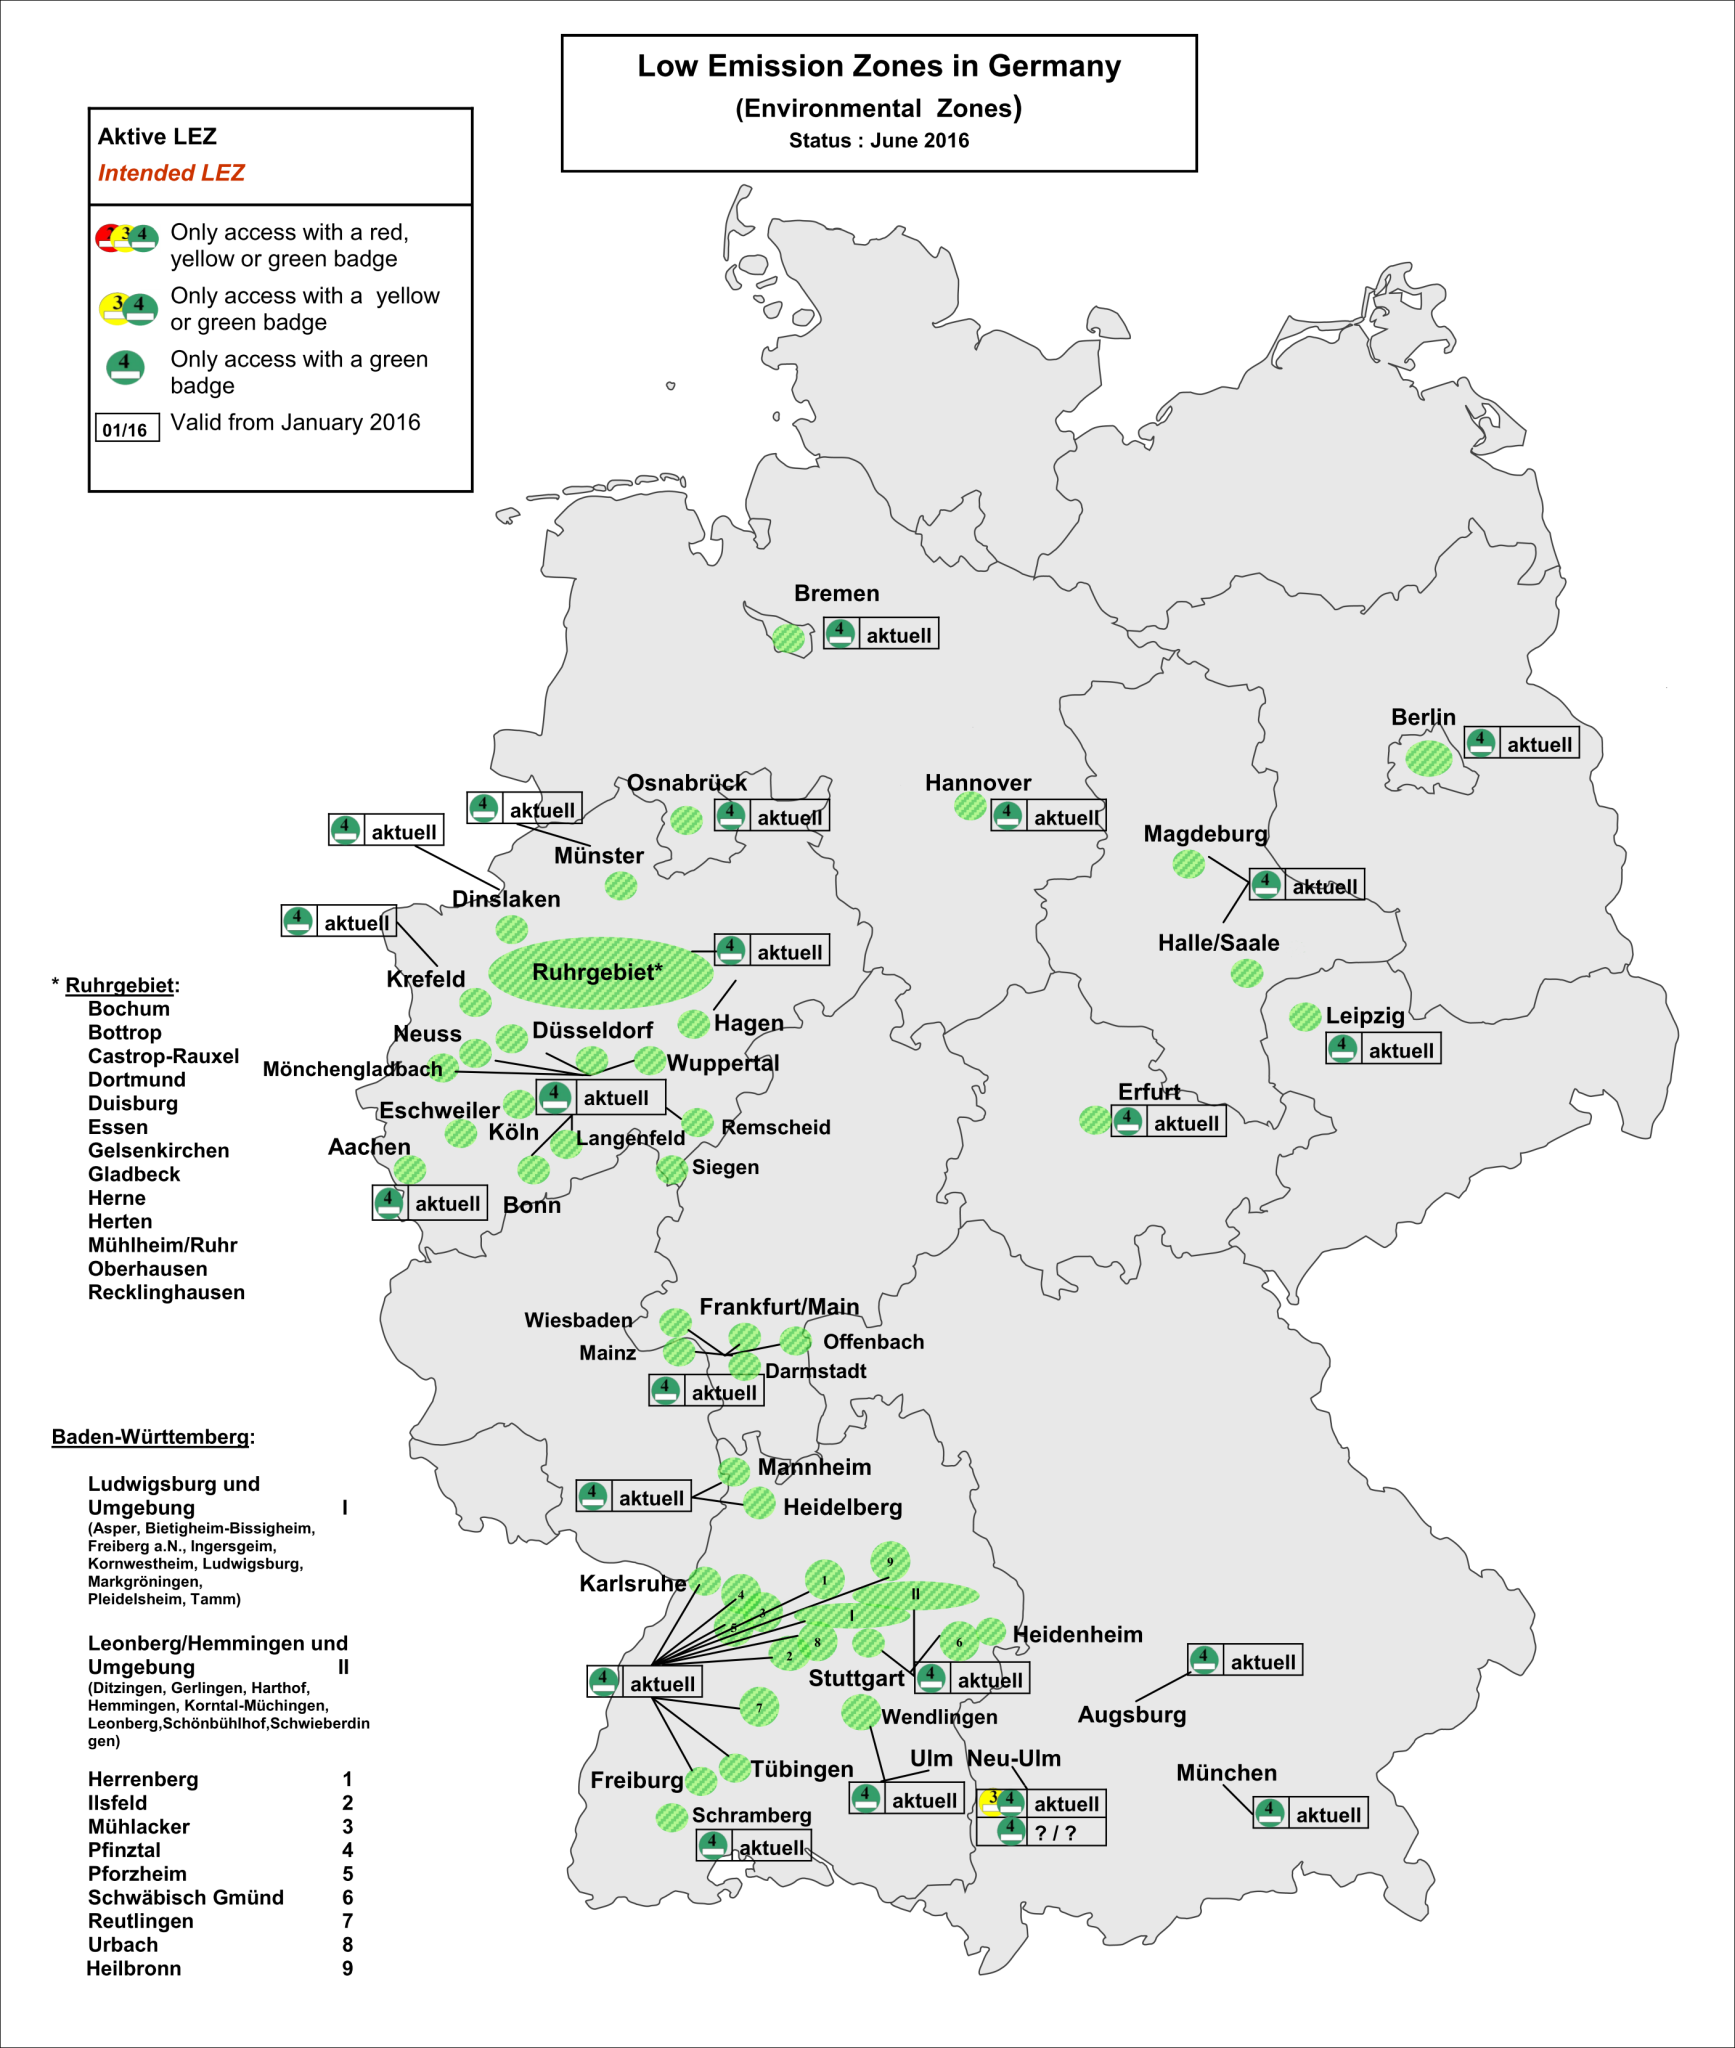 Low Emission Zones in Germany